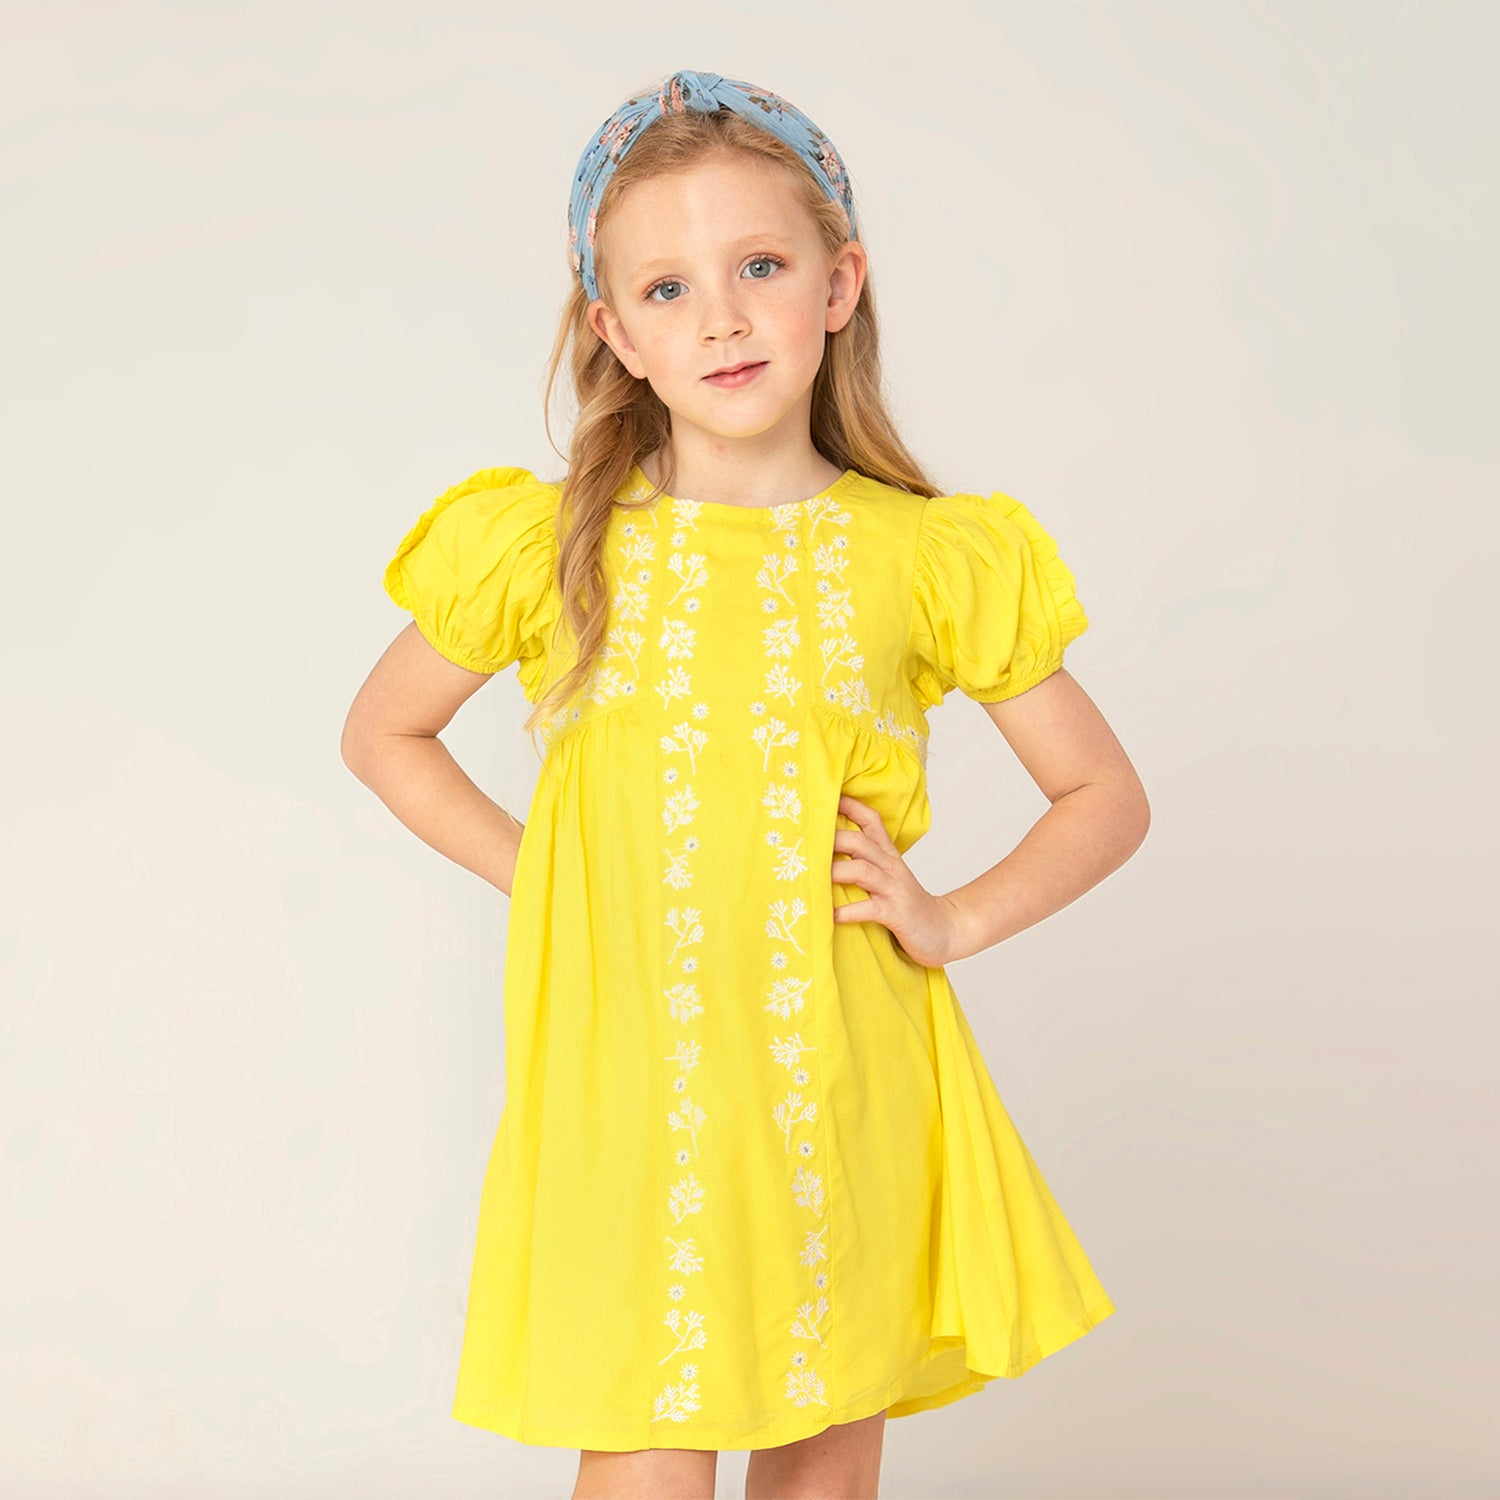 Mayflower Ruffled Dress